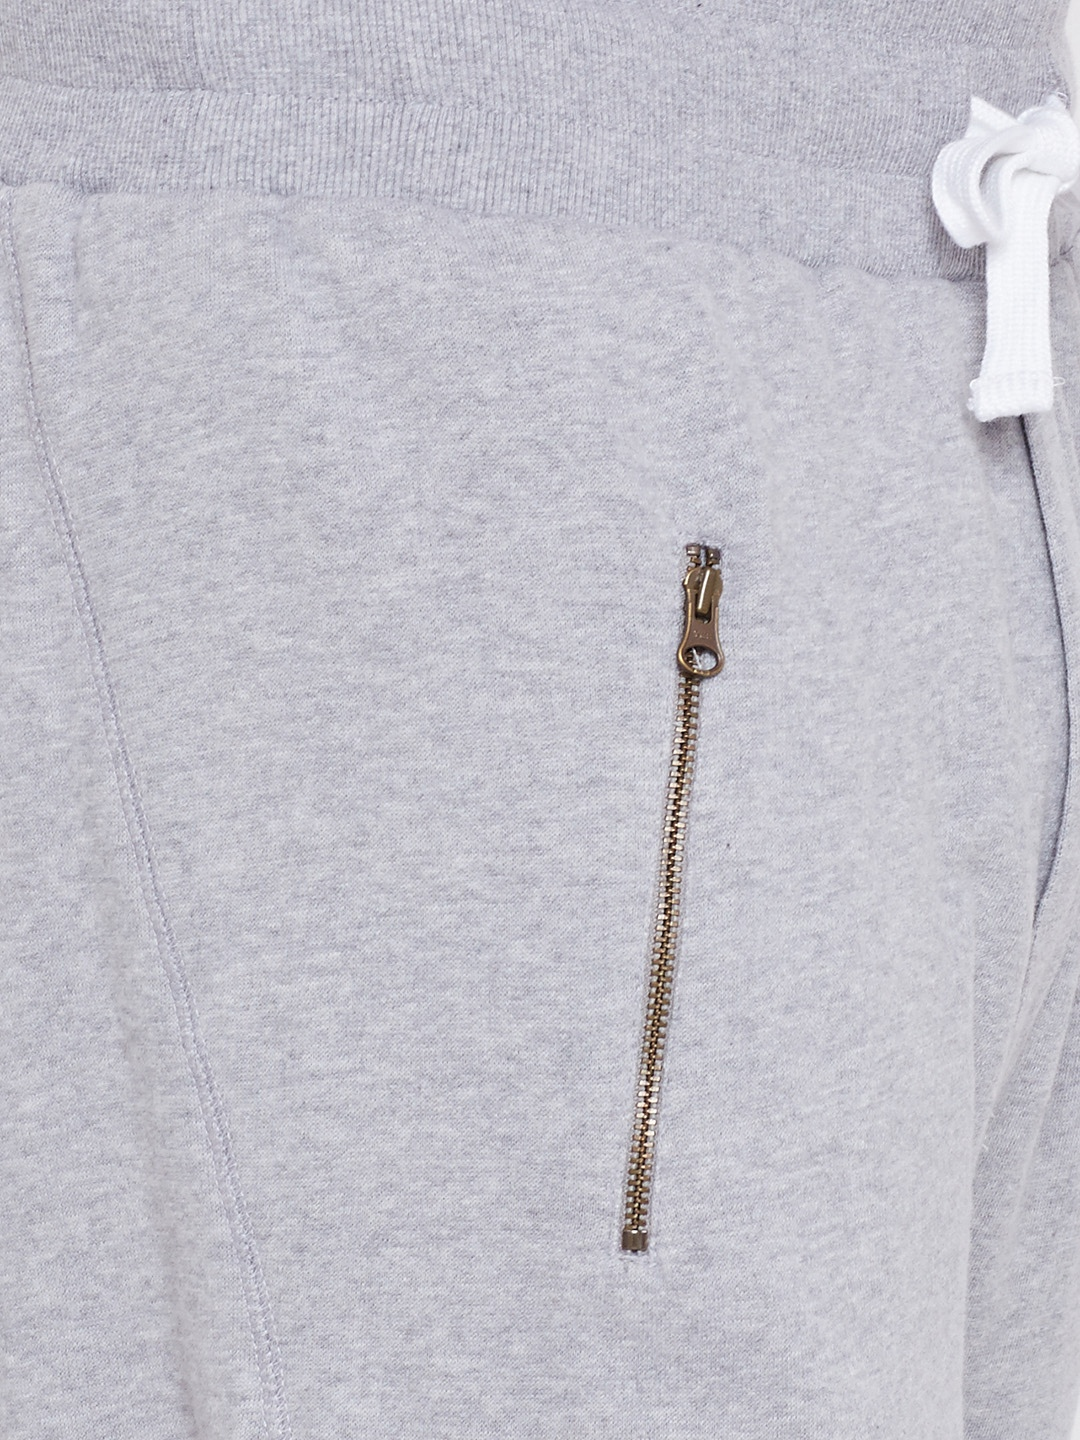 Buy united colors of benetton grey melange track pants track buy united colors of benetton grey melange track pants track pants for men myntra geenschuldenfo Image collections